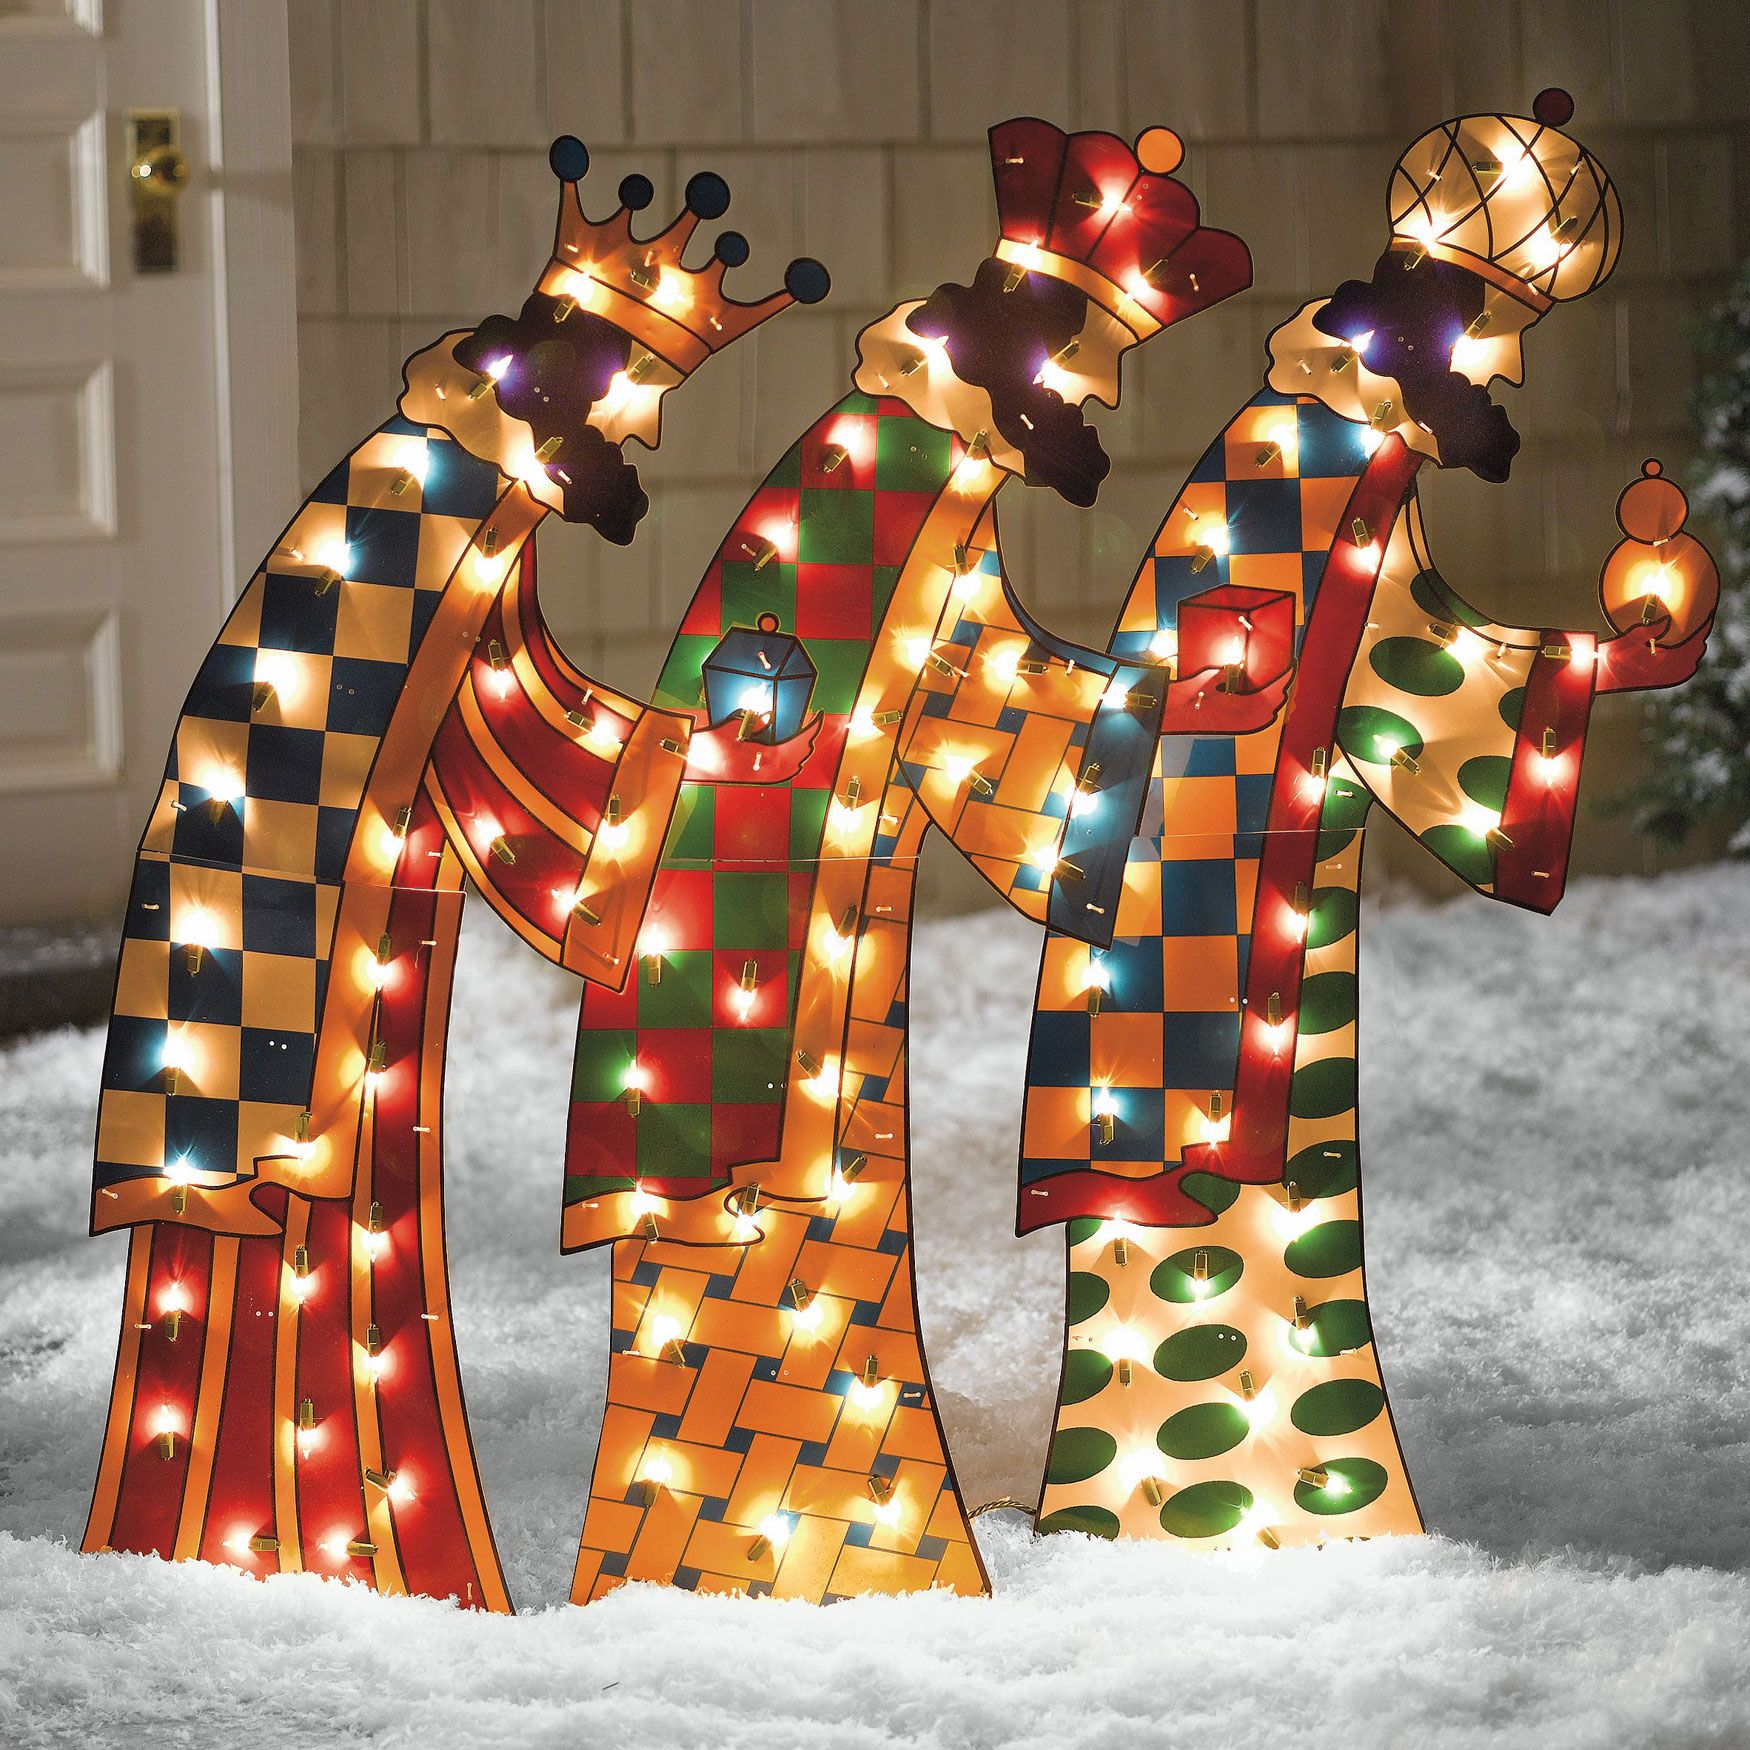 Three Kings Outdoor Decorations